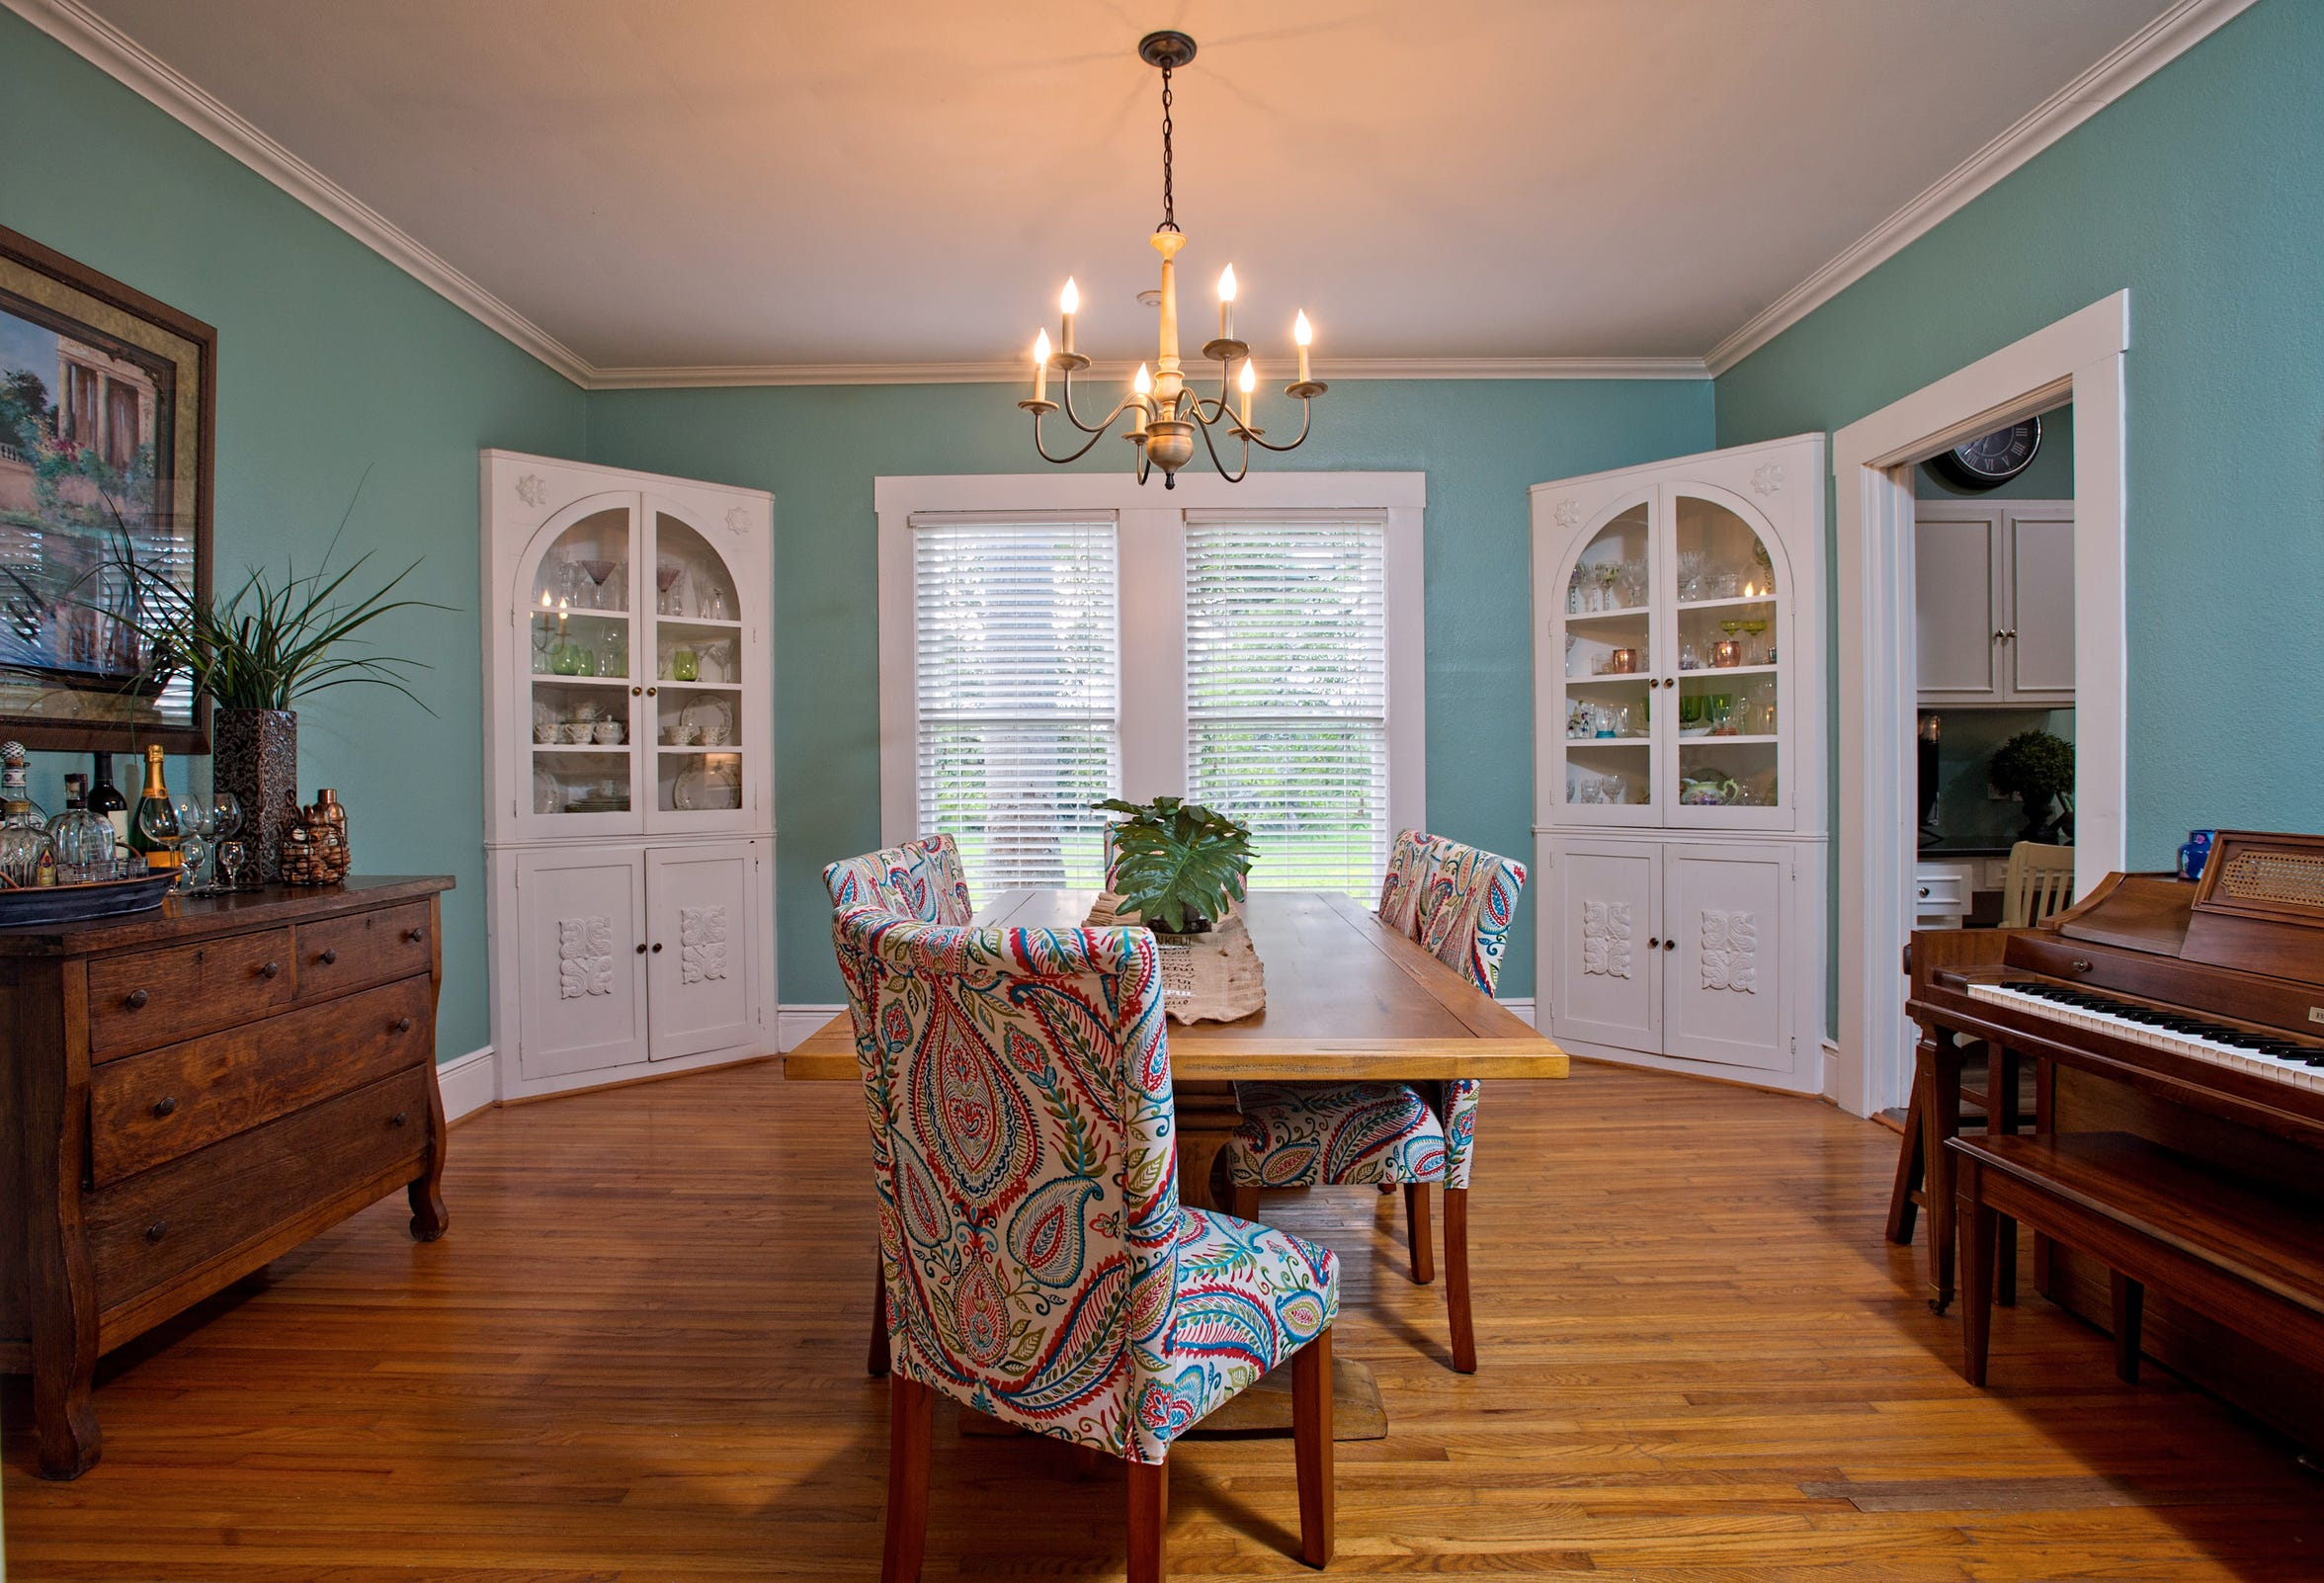 The dining room is spacious and has the original hardwood floors and corner built ins